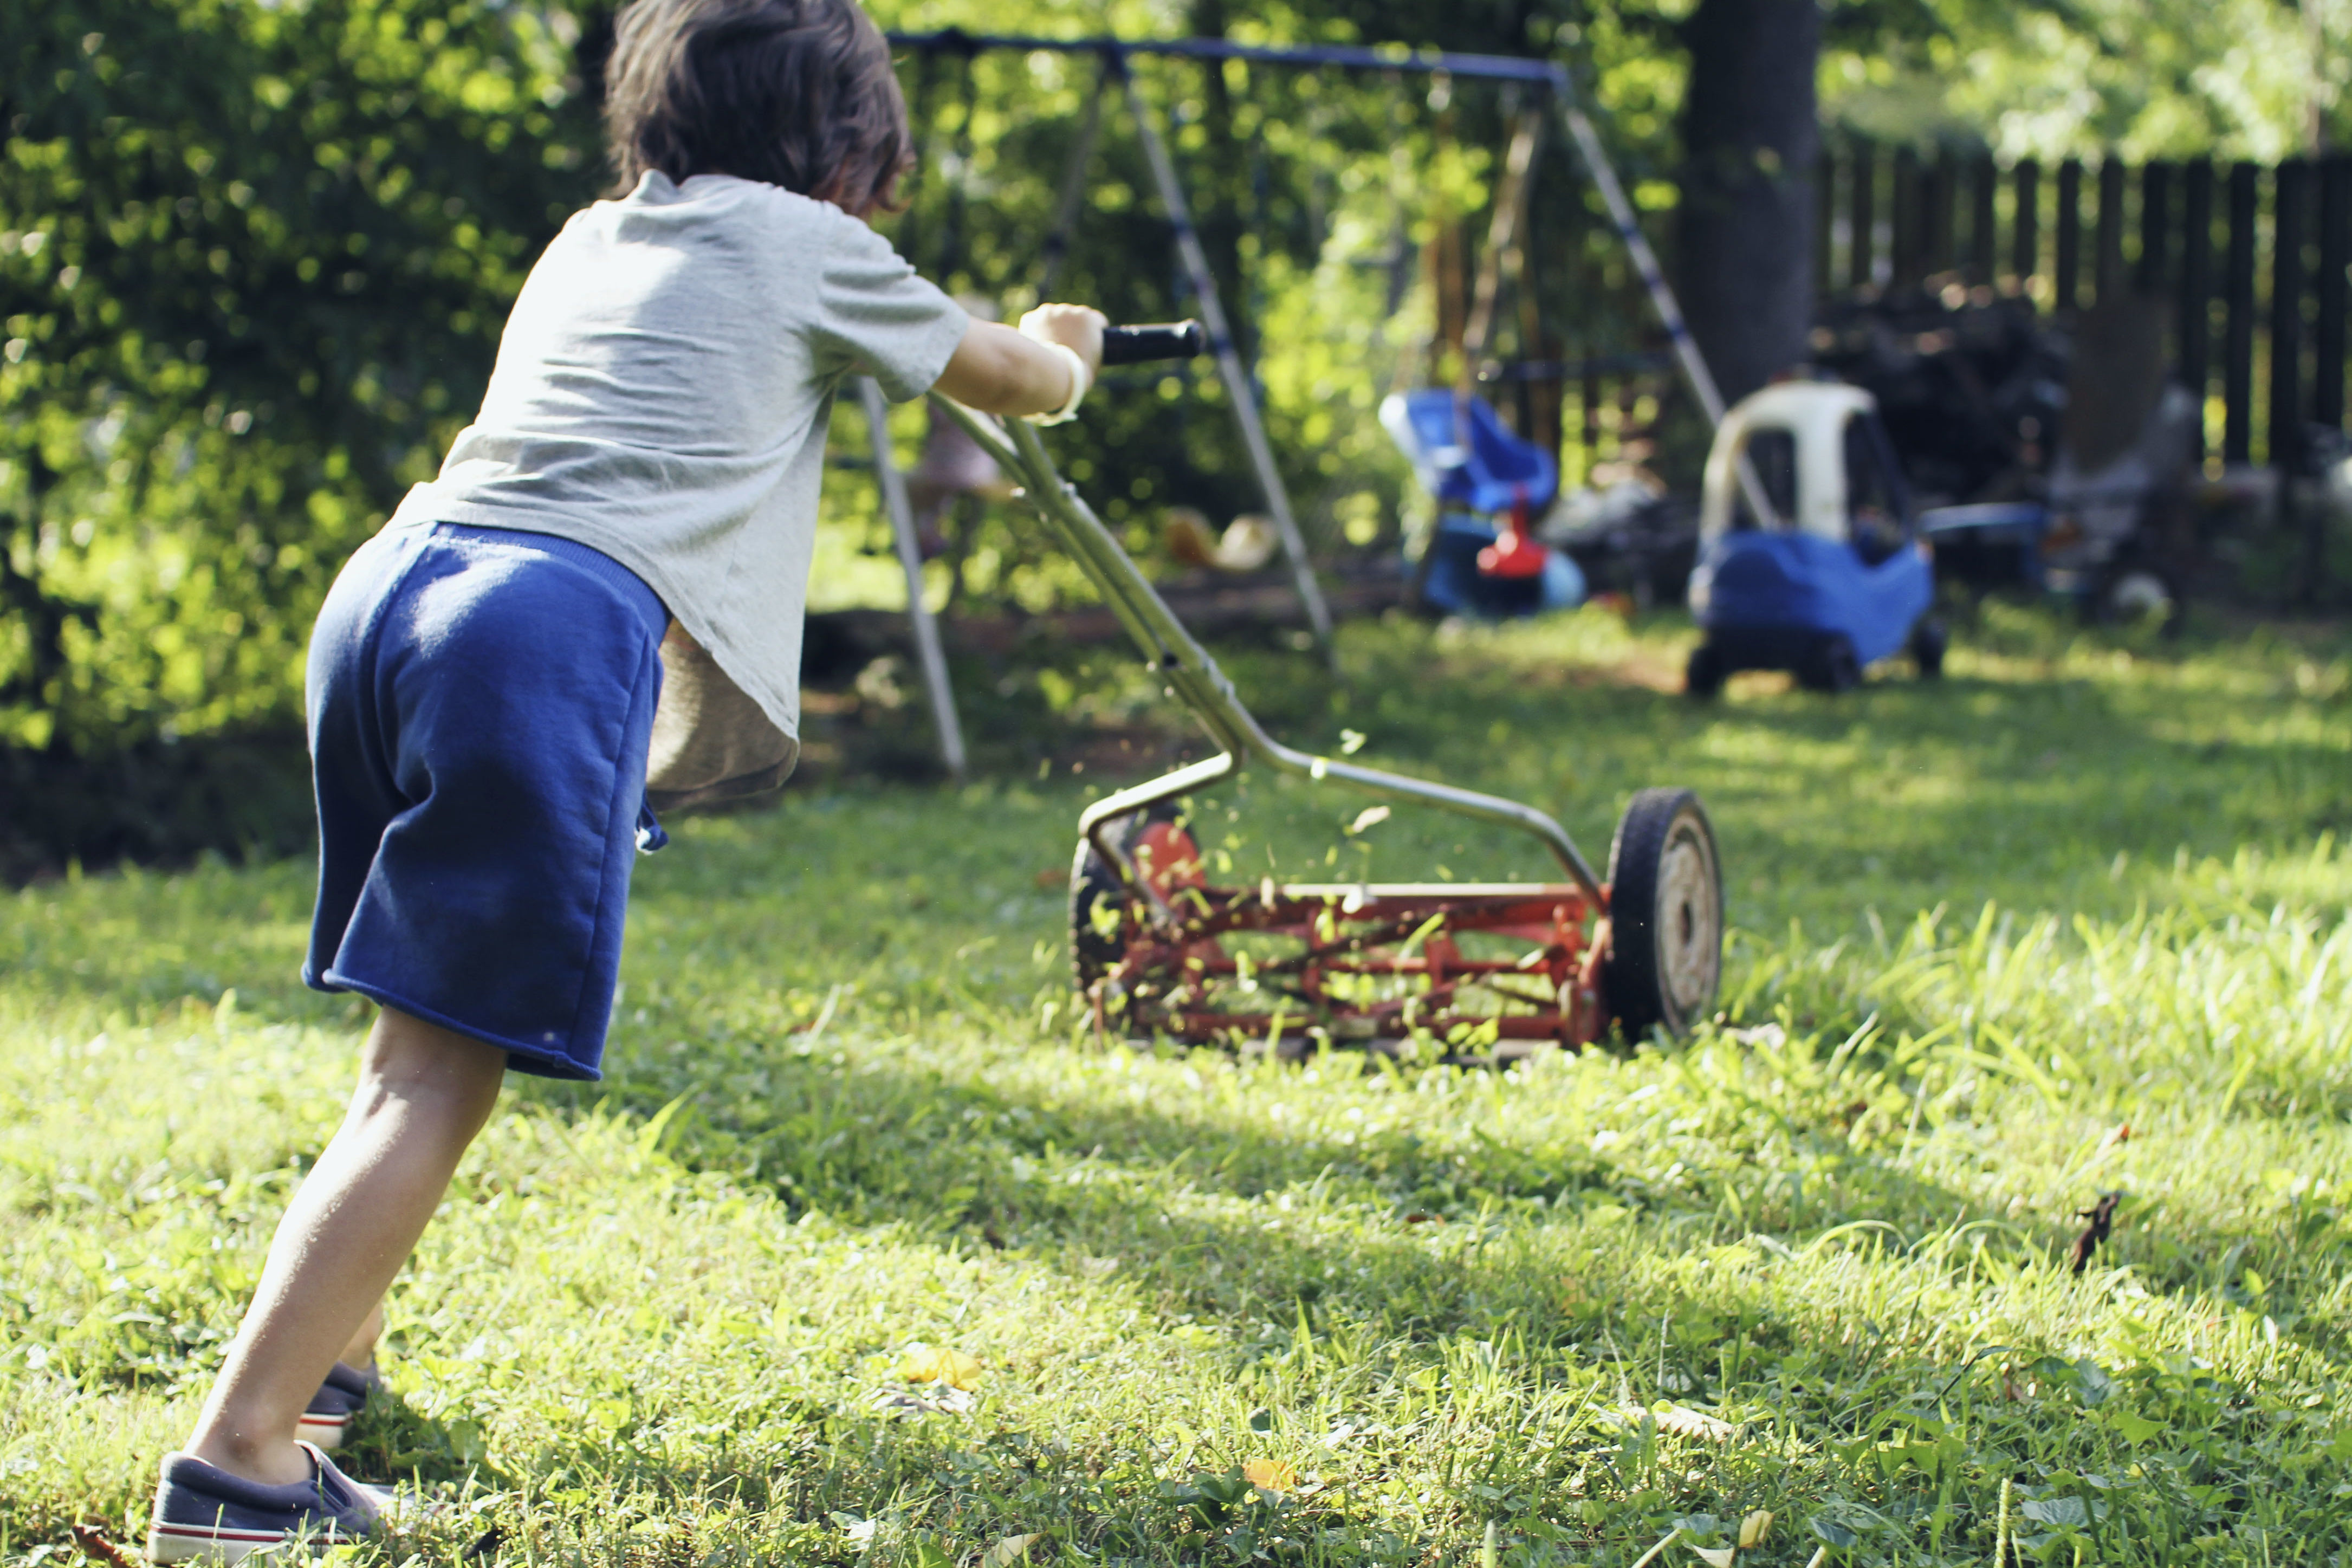 Kids Who Do Chores Become More Successful Adults, According to Harvard Researchers